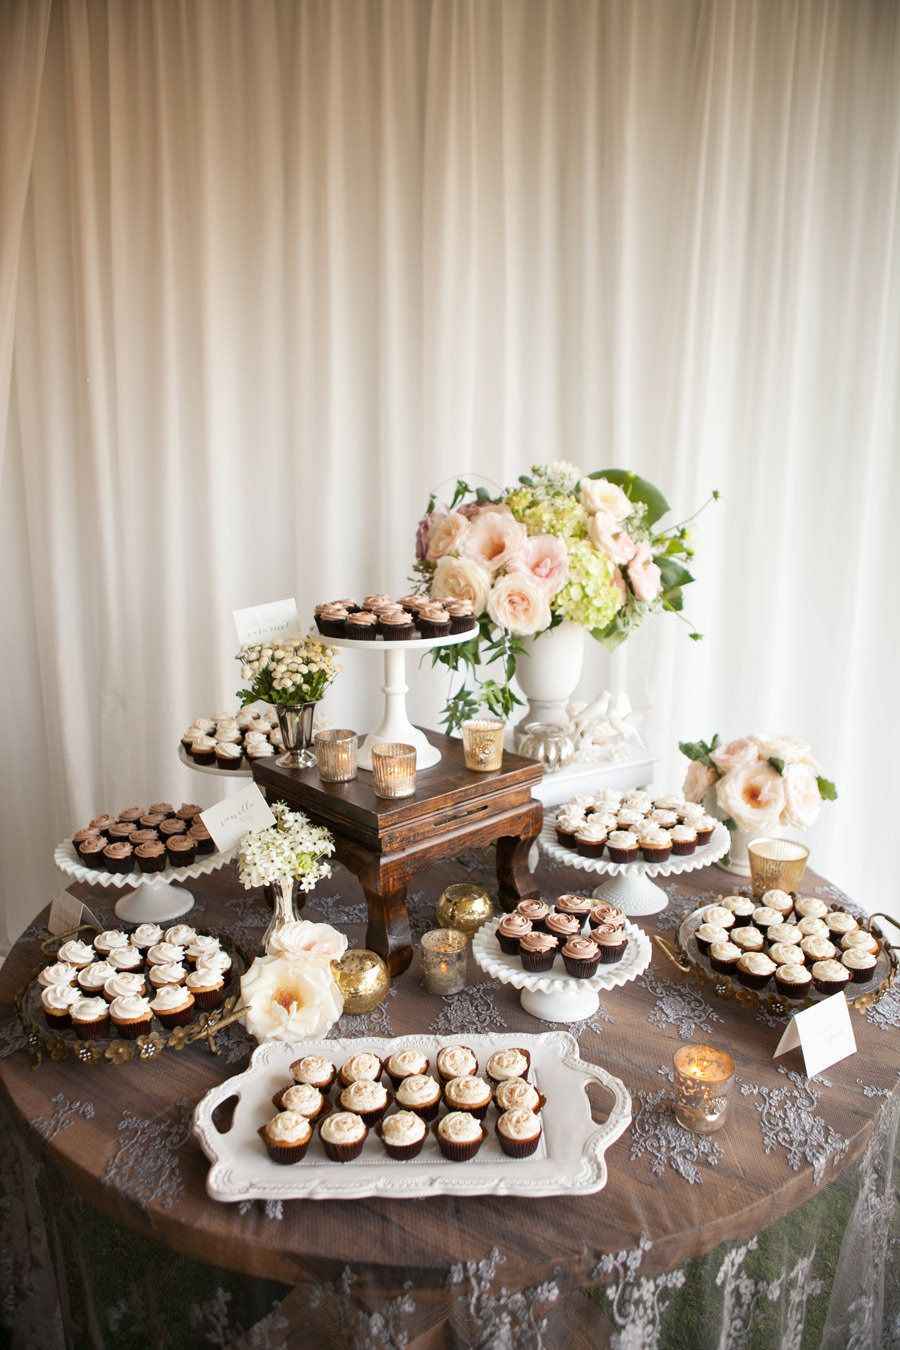 45 Chic and Creative Wedding Dessert Ideas | Pinterest | Dessert ...